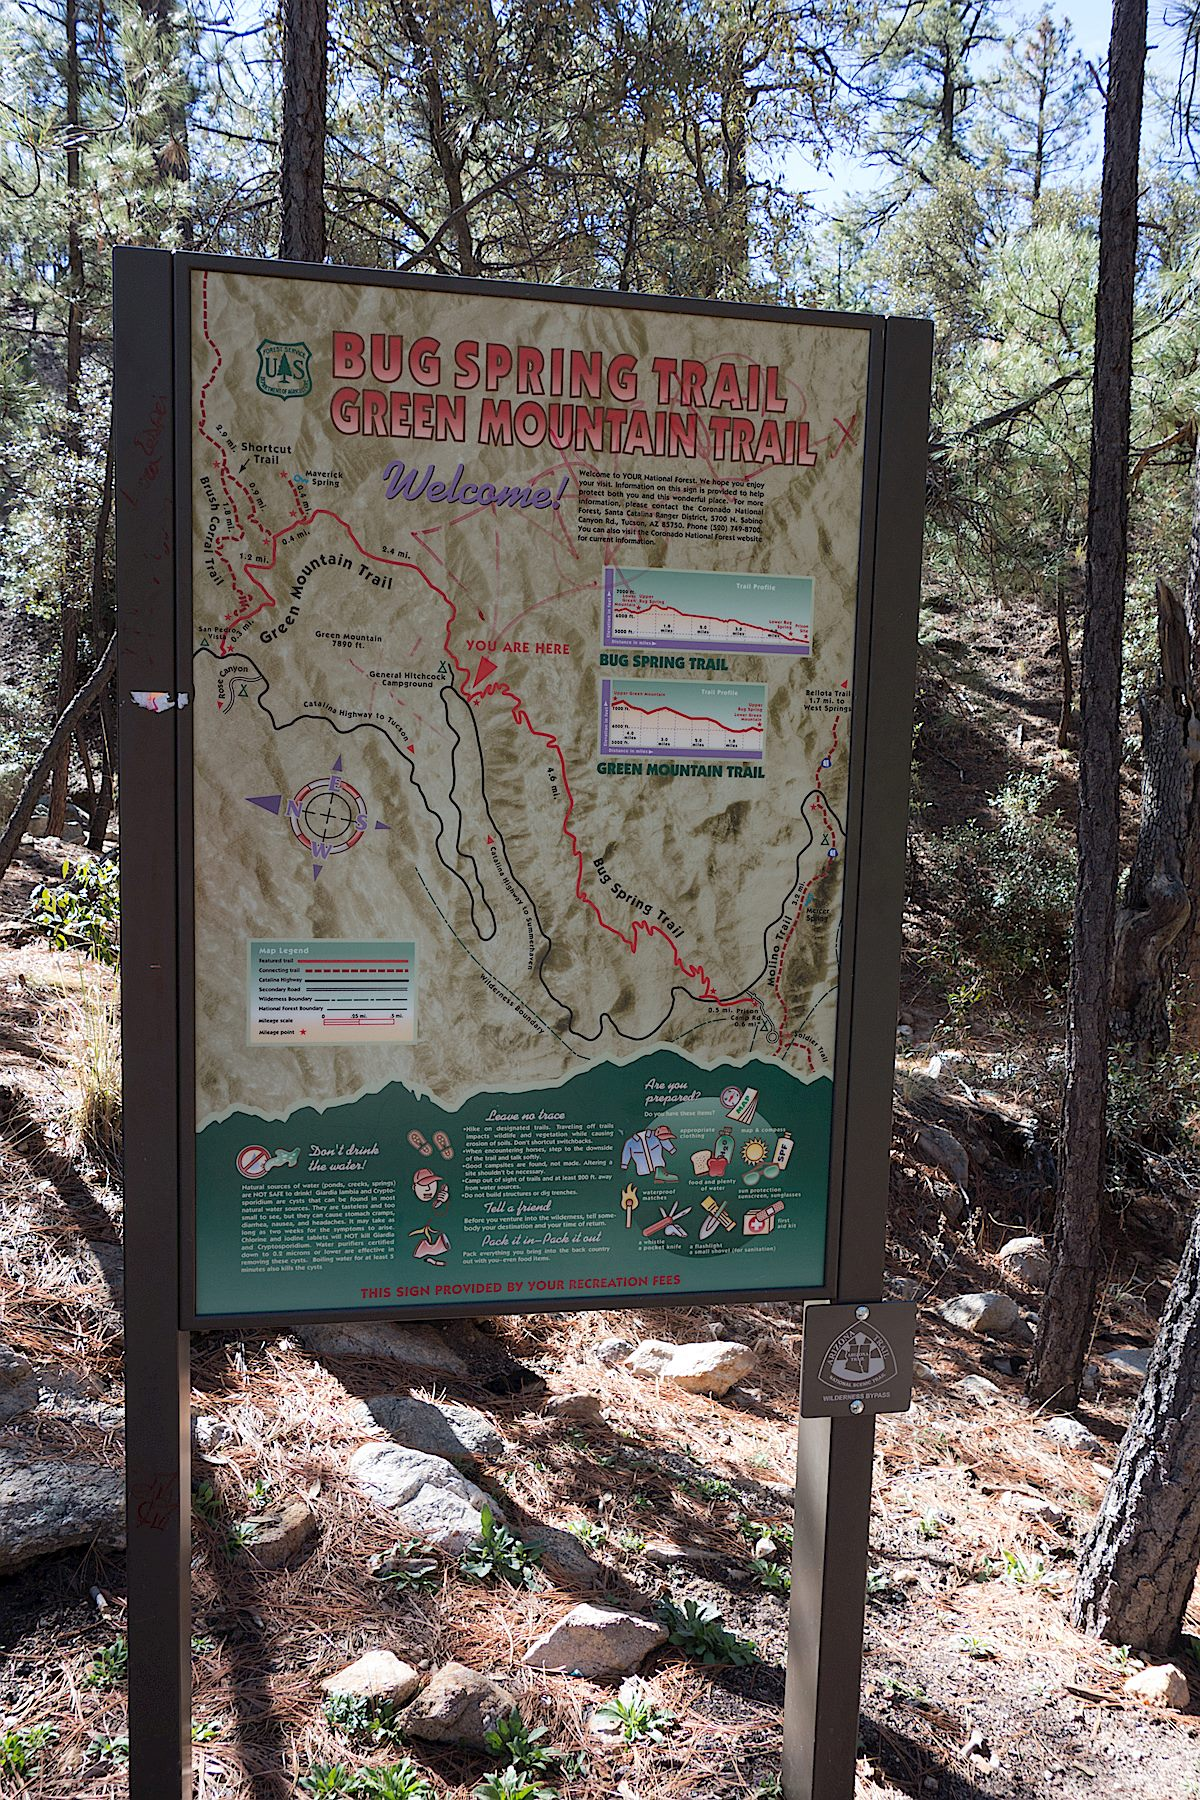 Trail map at the Lower Green Mountain Trailhead. March 2014.